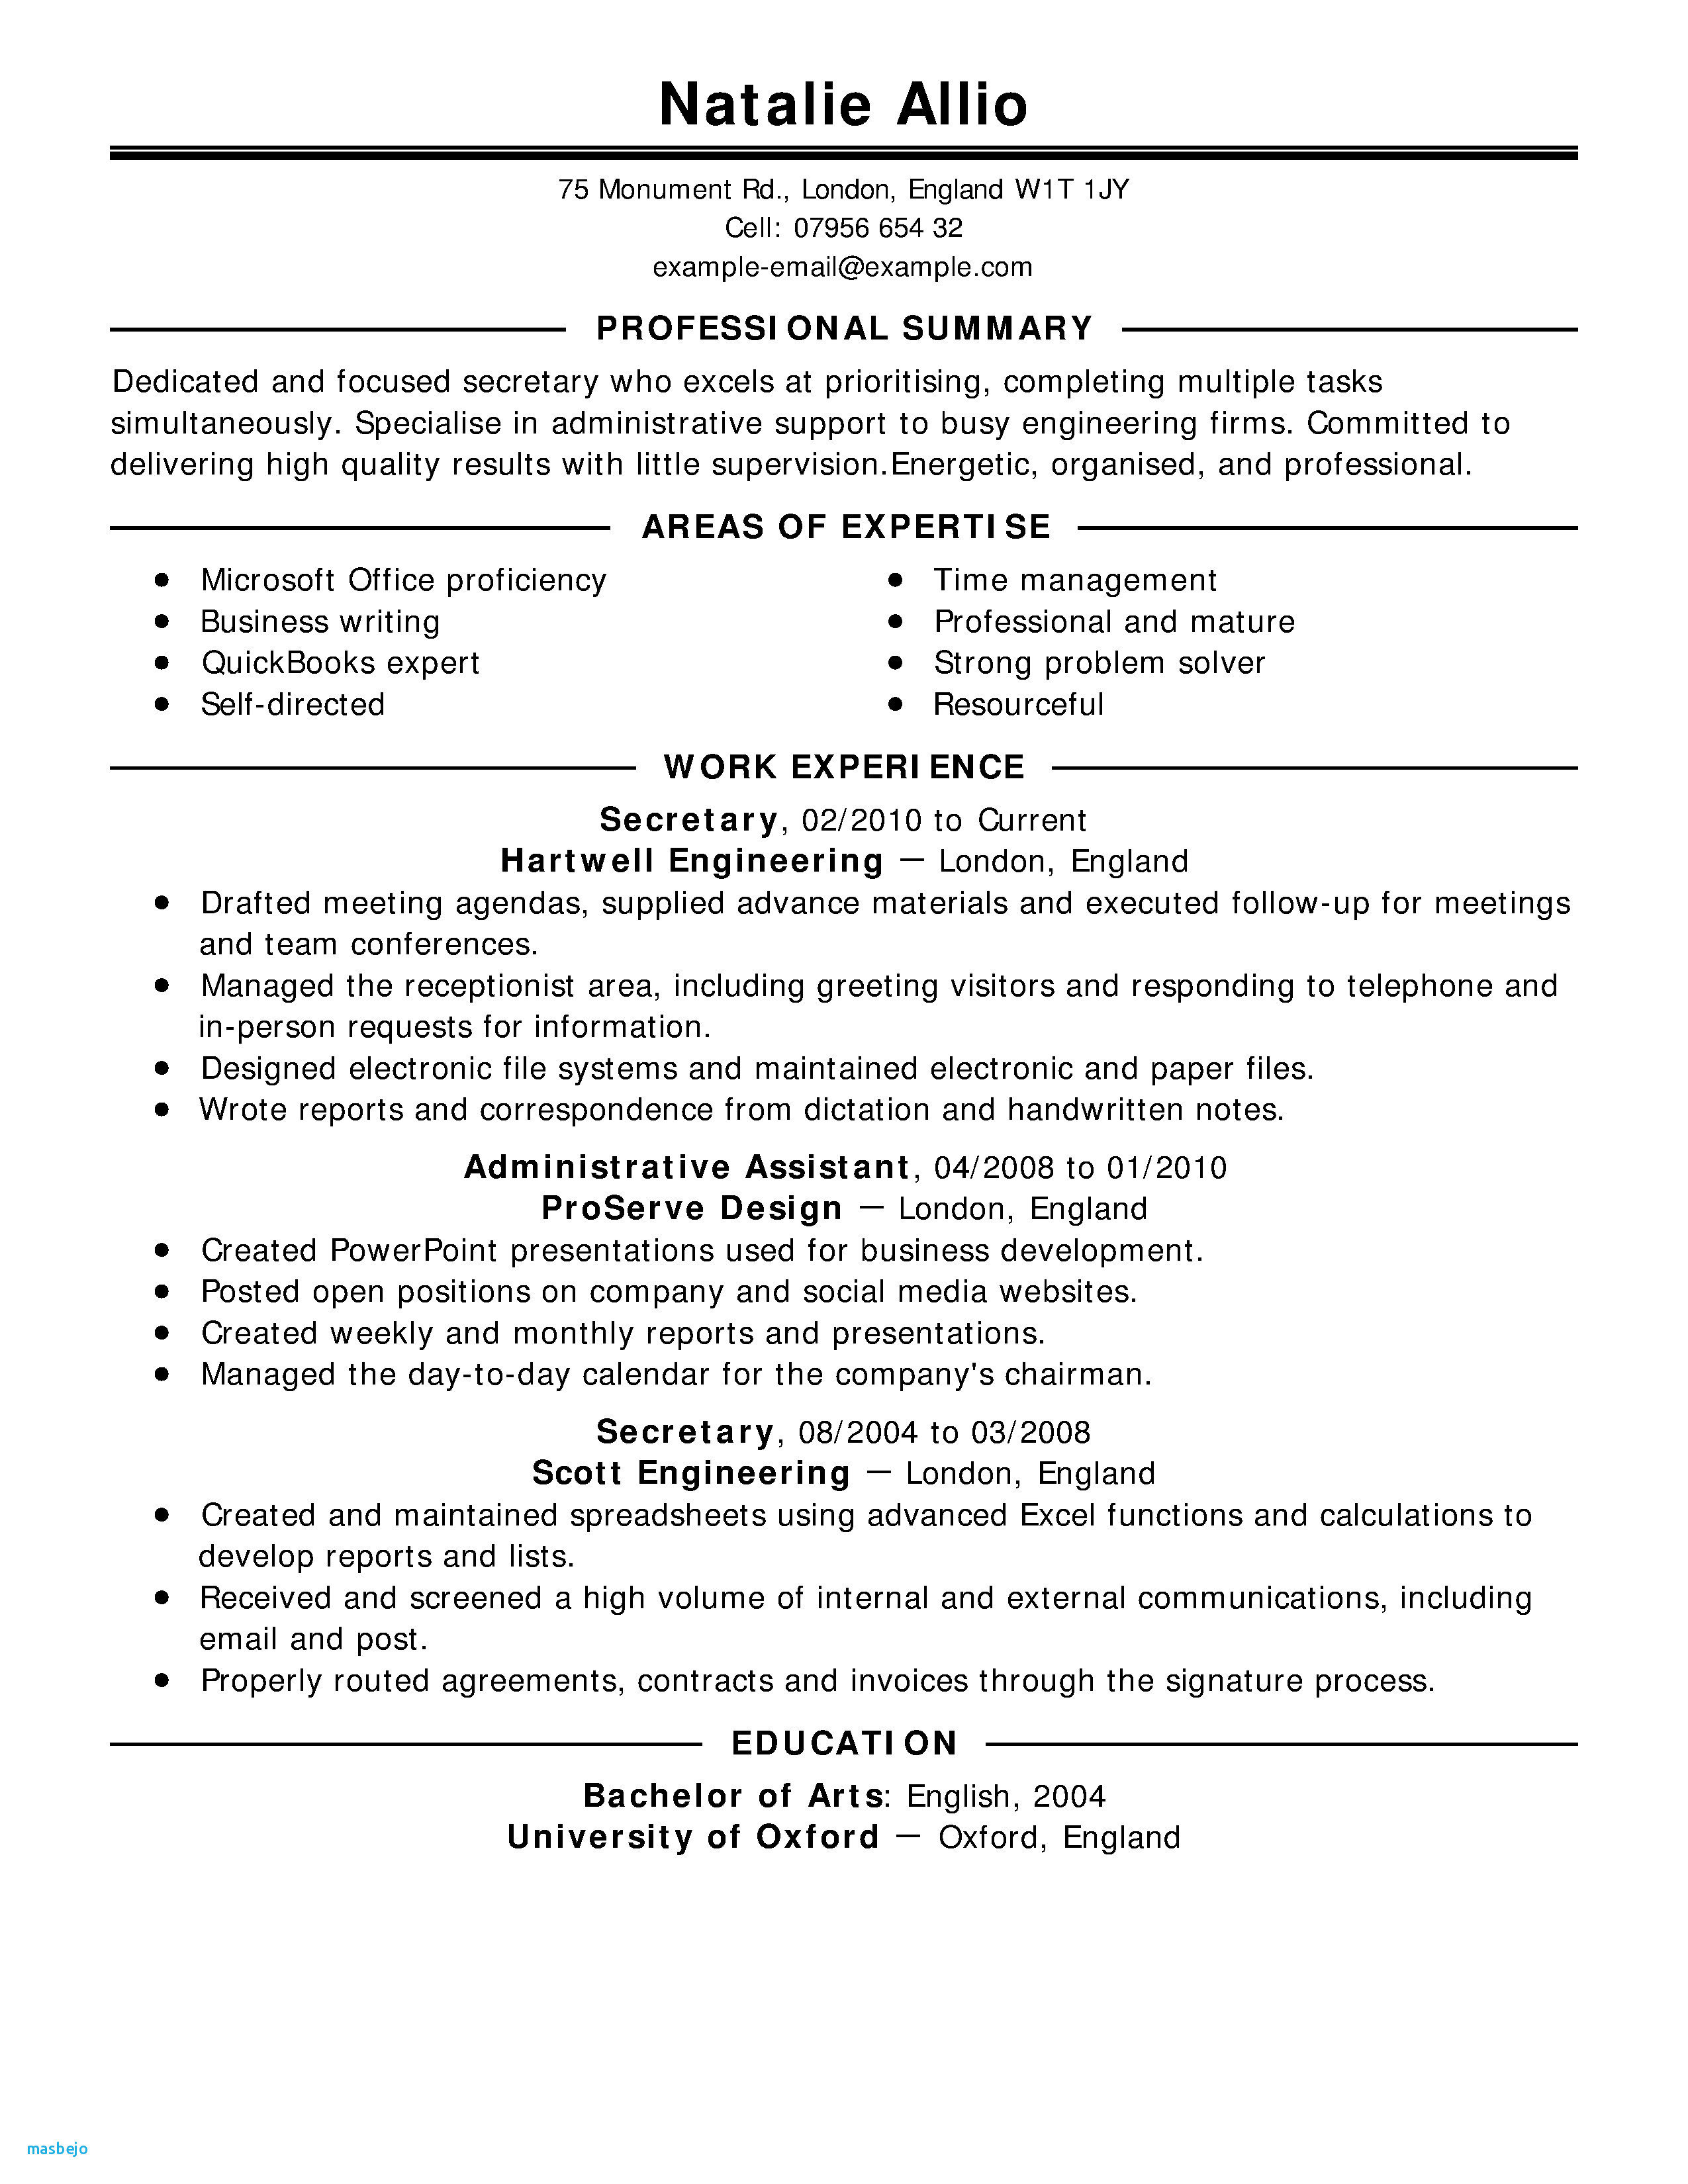 Lvn Skills for Resume - Lpn Resume Examples Unique Sample College Application Resume Lovely